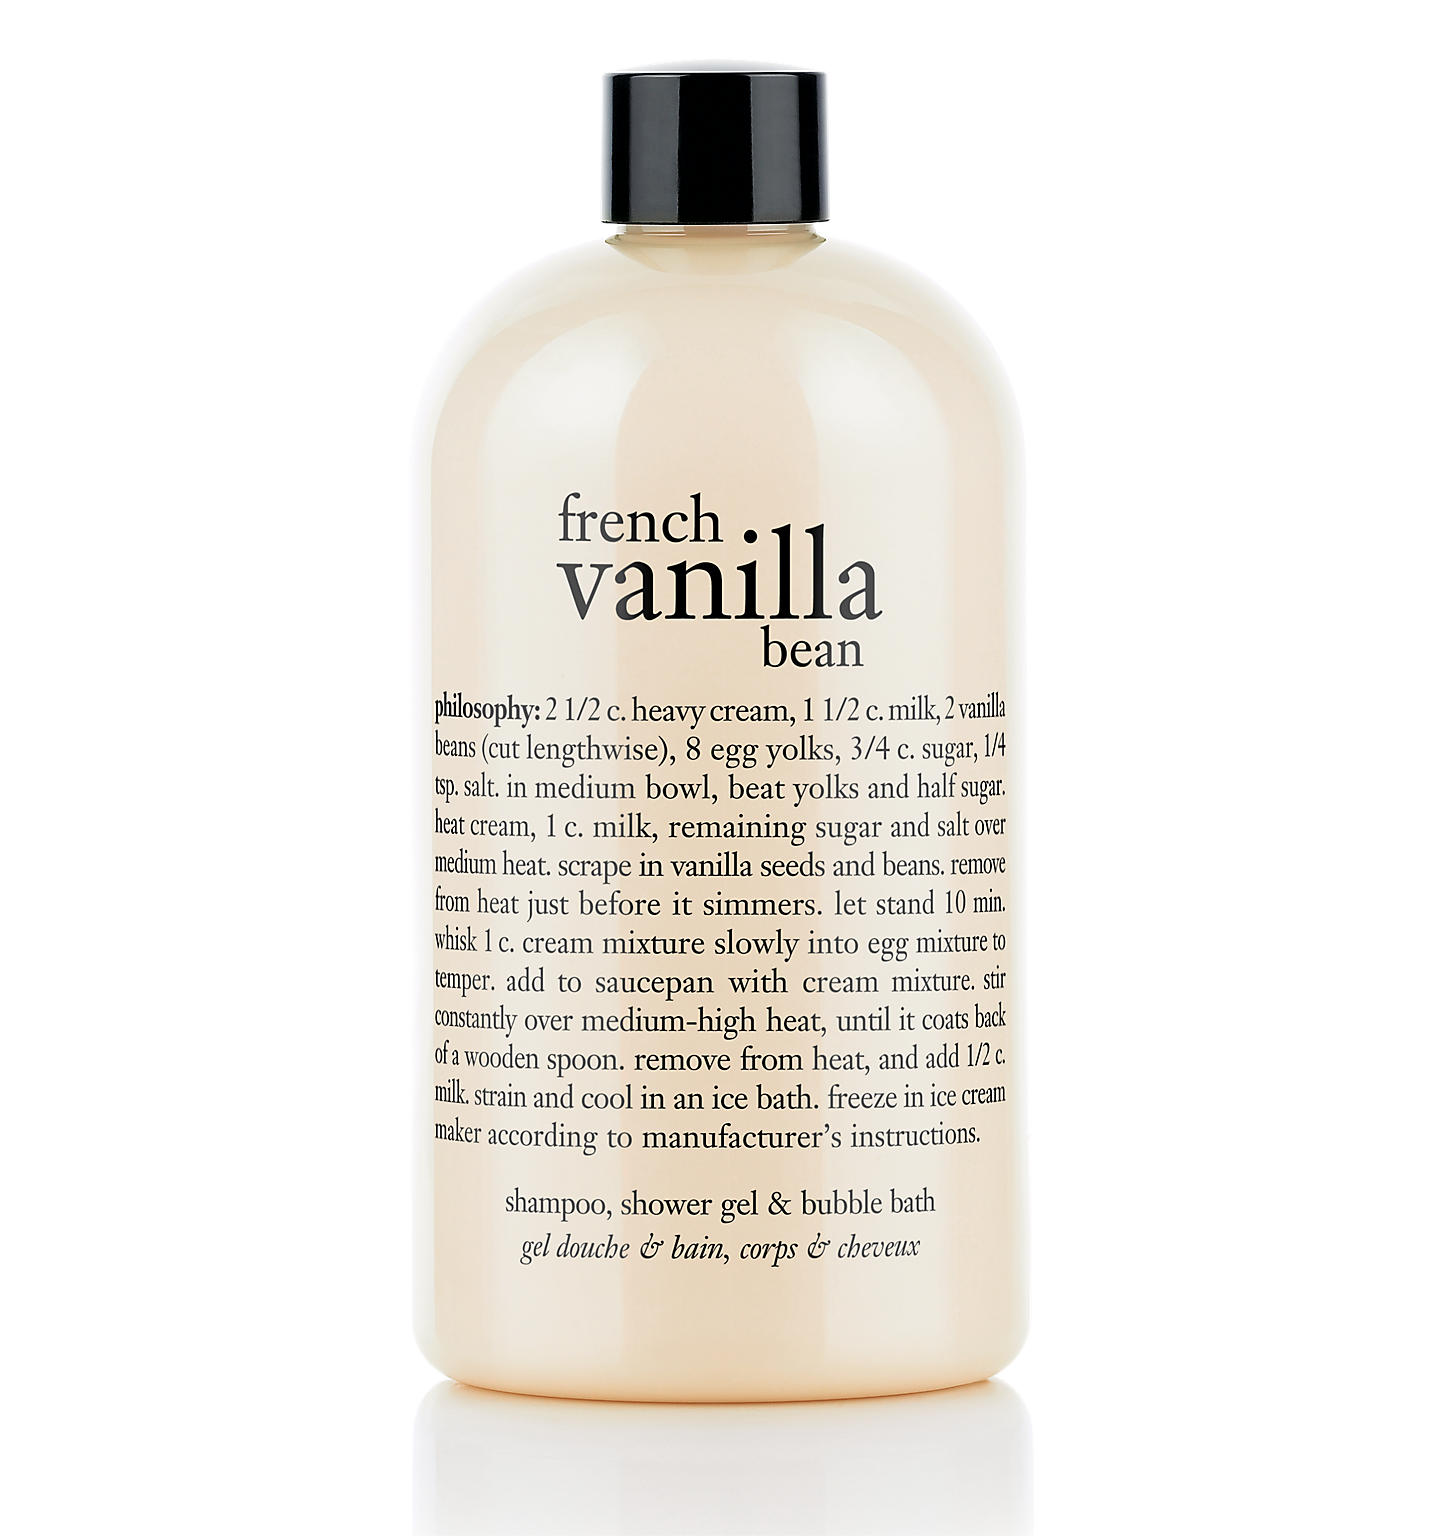 french vanilla bean shampoo, shower gel & bubble bath